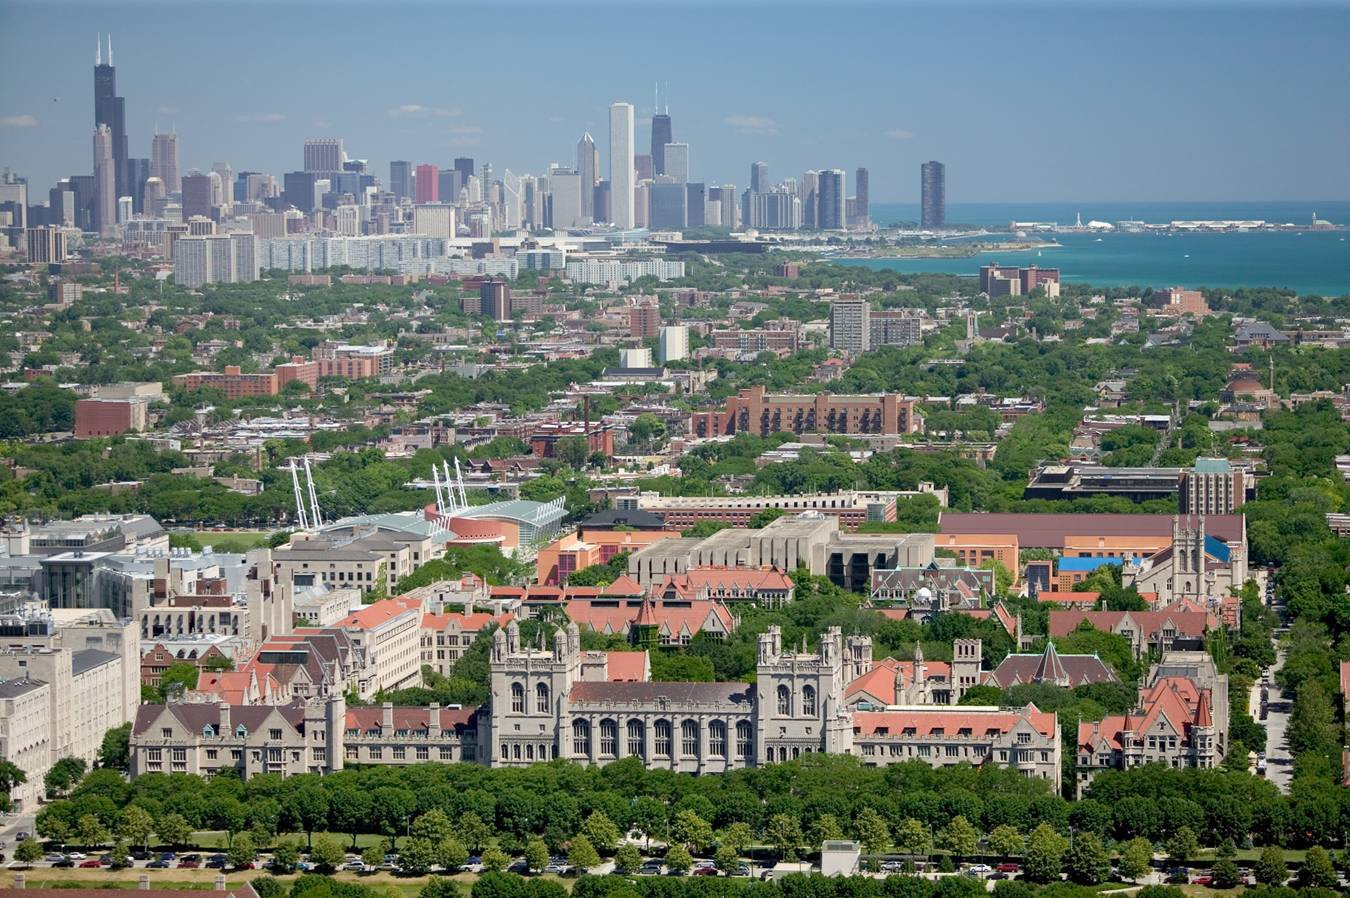 For 27 years, the South Side didn't have a trauma center to treat gunshot victims. This meant the injured would have to endure a 10-mile ambulance ride north, often through dense traffic. Now the University of Chicago is slated to change that. (Photo courtesy of Alex McLean)